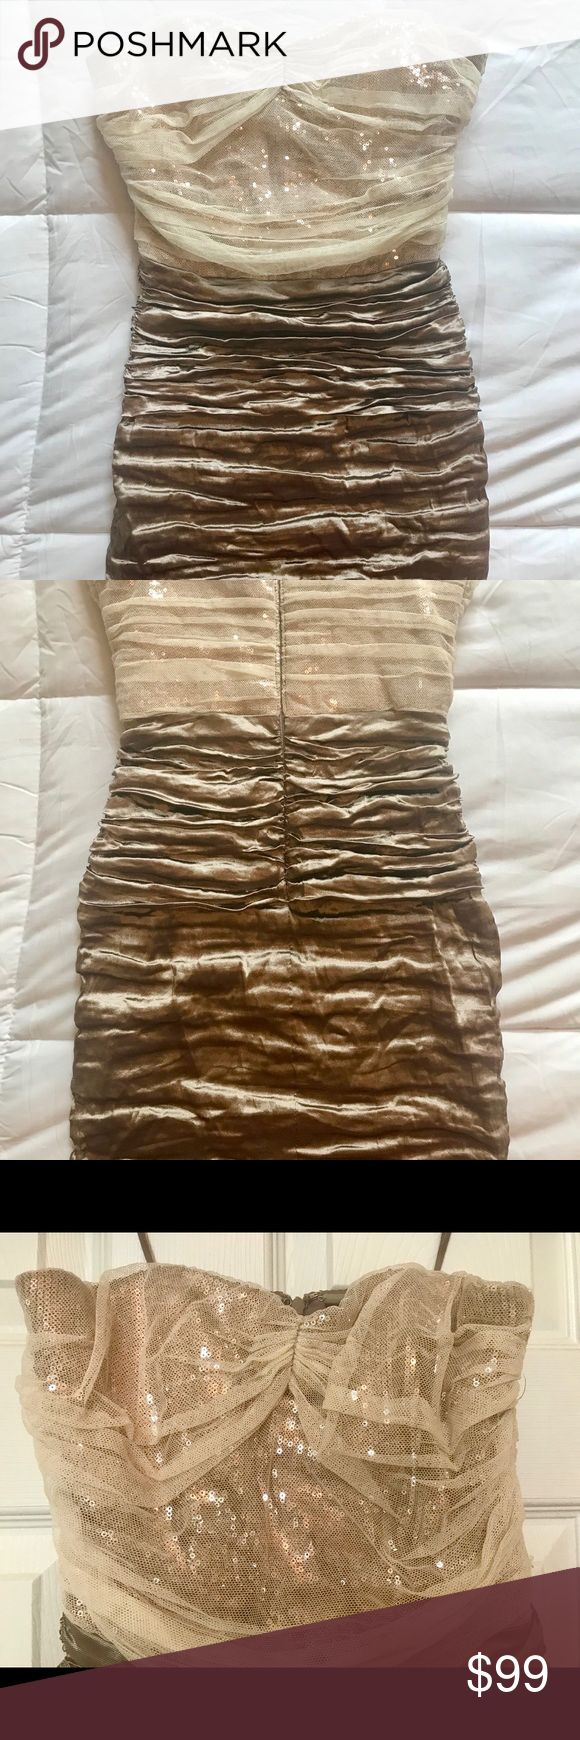 Strapless gold sequin mini party dress, size 2. This beautiful high quality Nicole Miller dress is the perfect going out dress! It hits about mid thigh, with ruching and gorgeous gold sequin detail. Zips in the back. Size 2, form fitting. Nicole Miller Dresses Mini